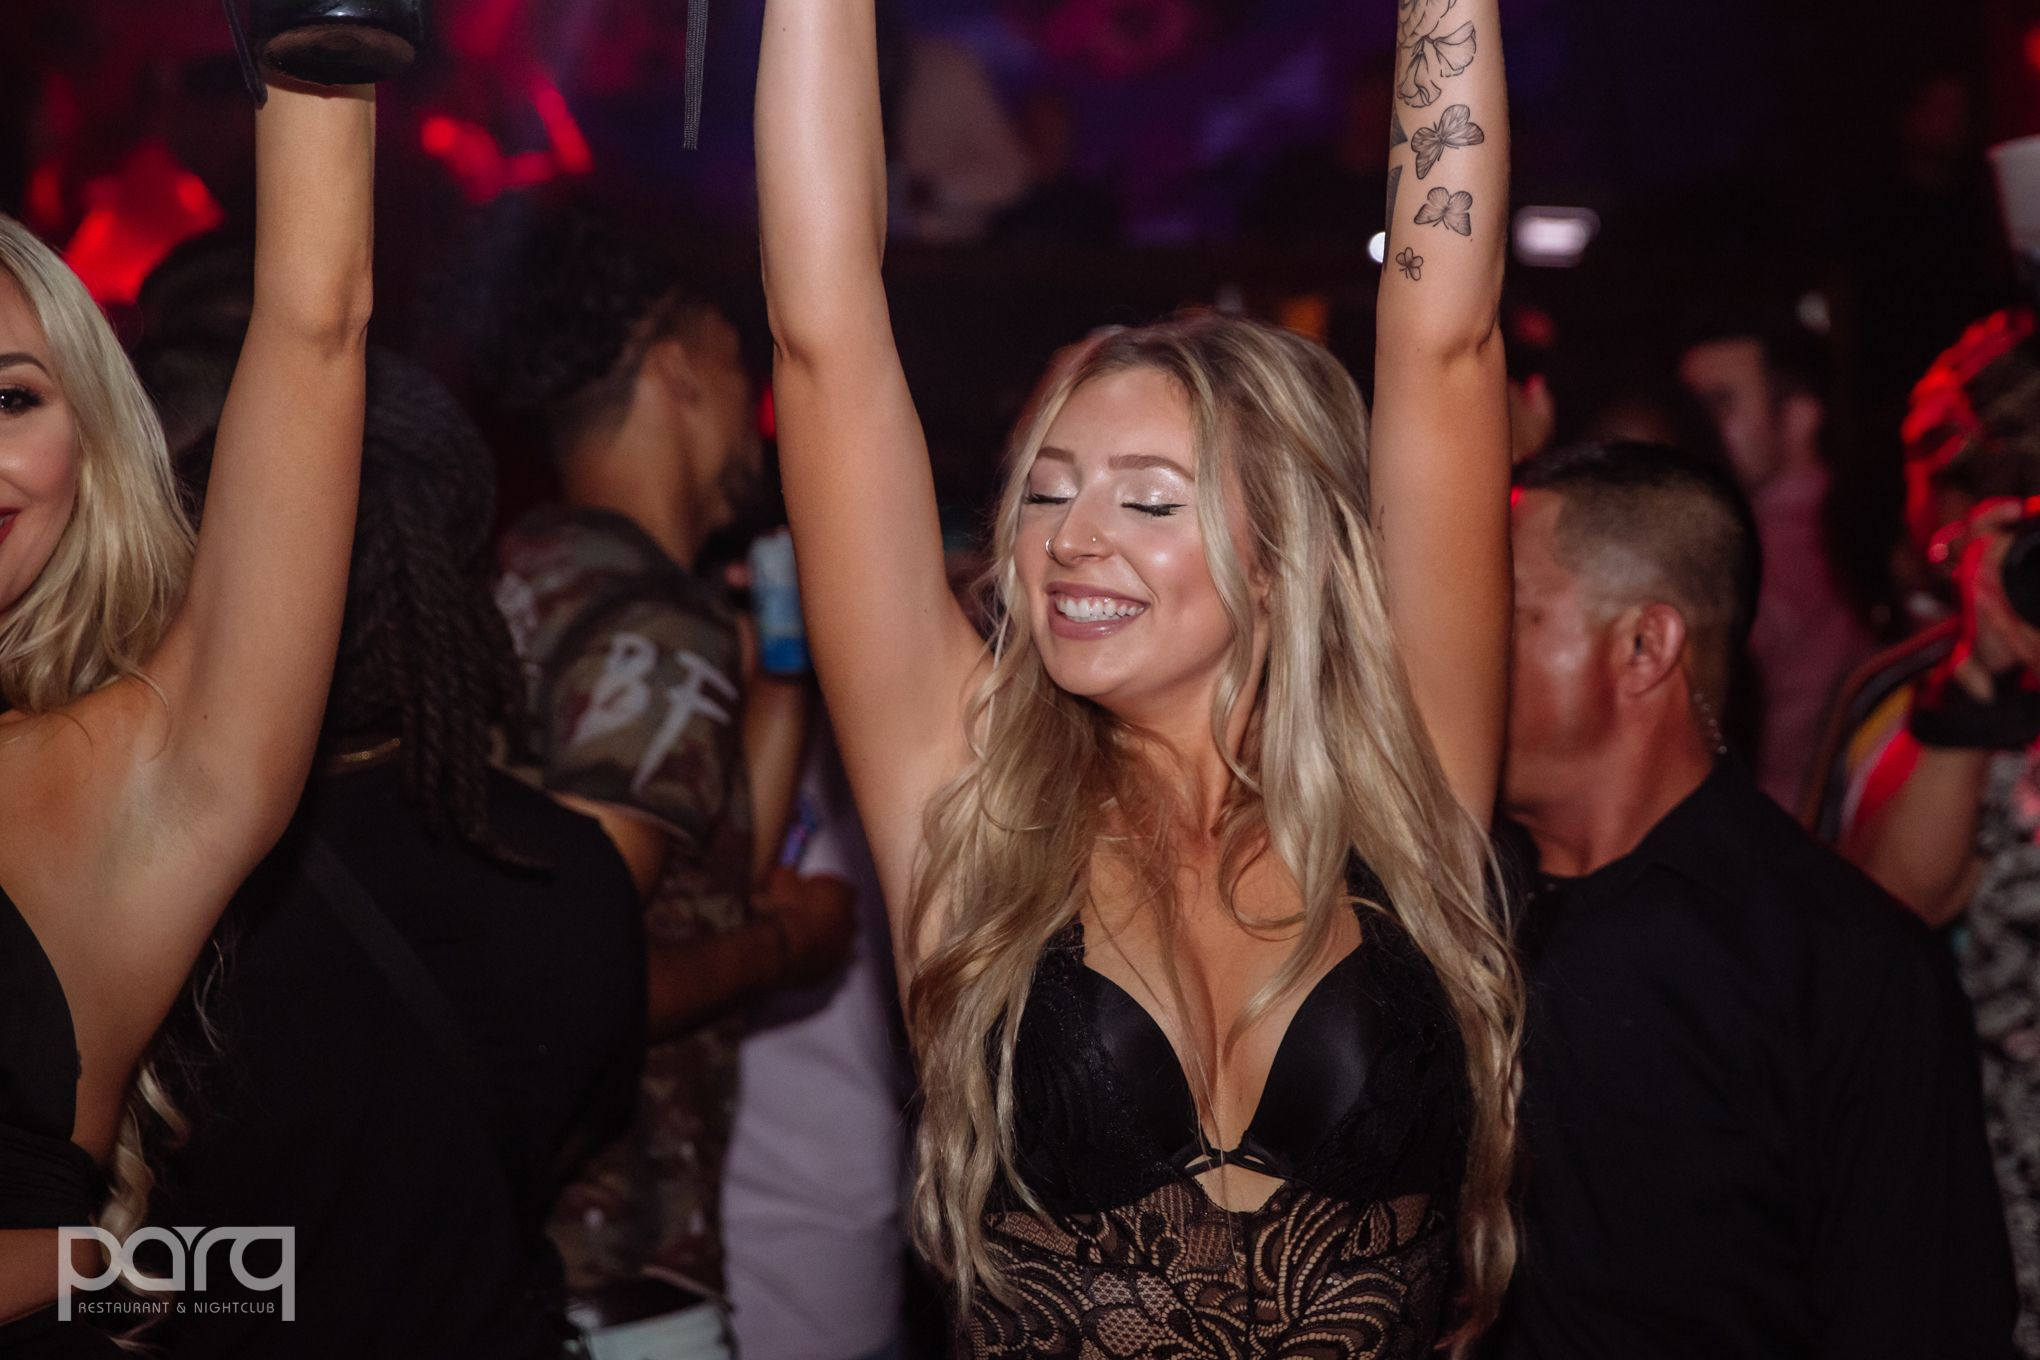 06.07.19 Parq - DJ Hollywood-16.jpg